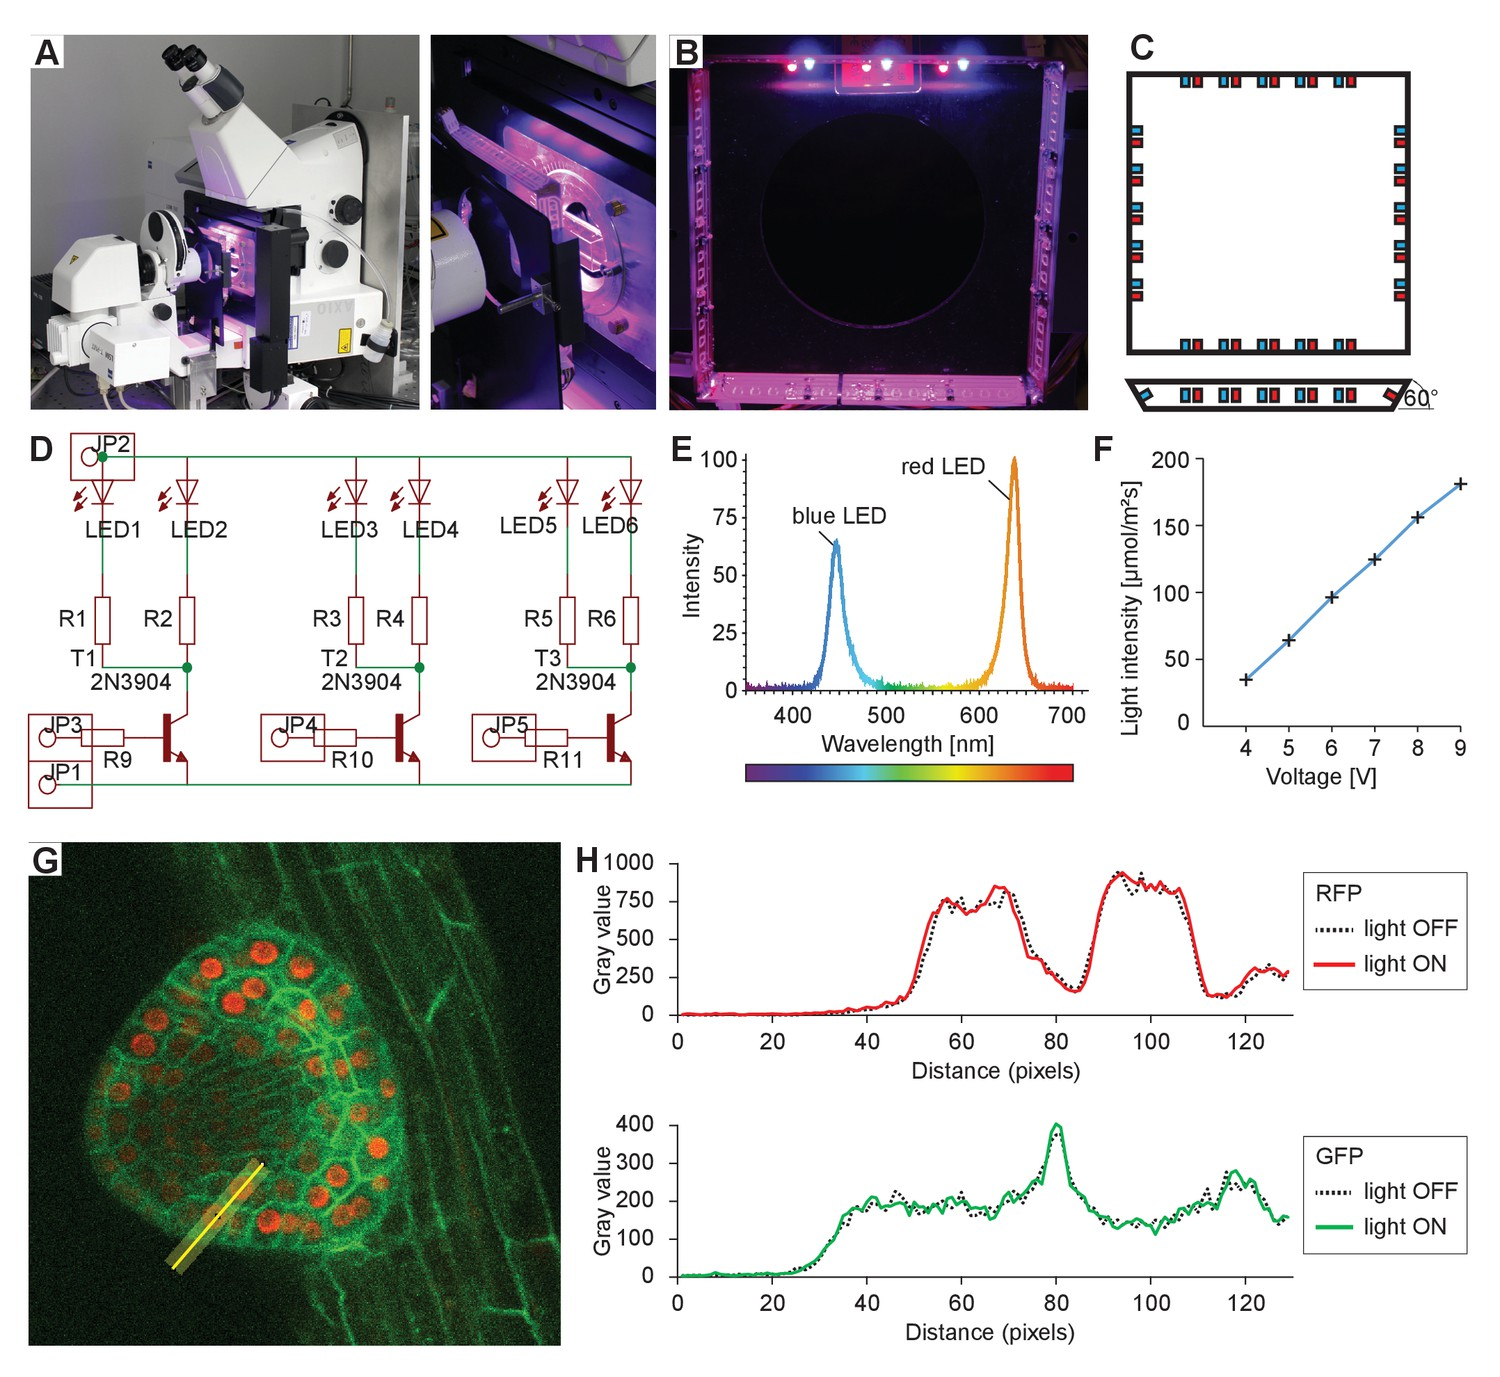 Live Tracking Of Moving Samples In Confocal Microscopy For Evas Are Extensive Printedcircuit Board Pcb Networks That Contain Integrated Sample Illumination Setup